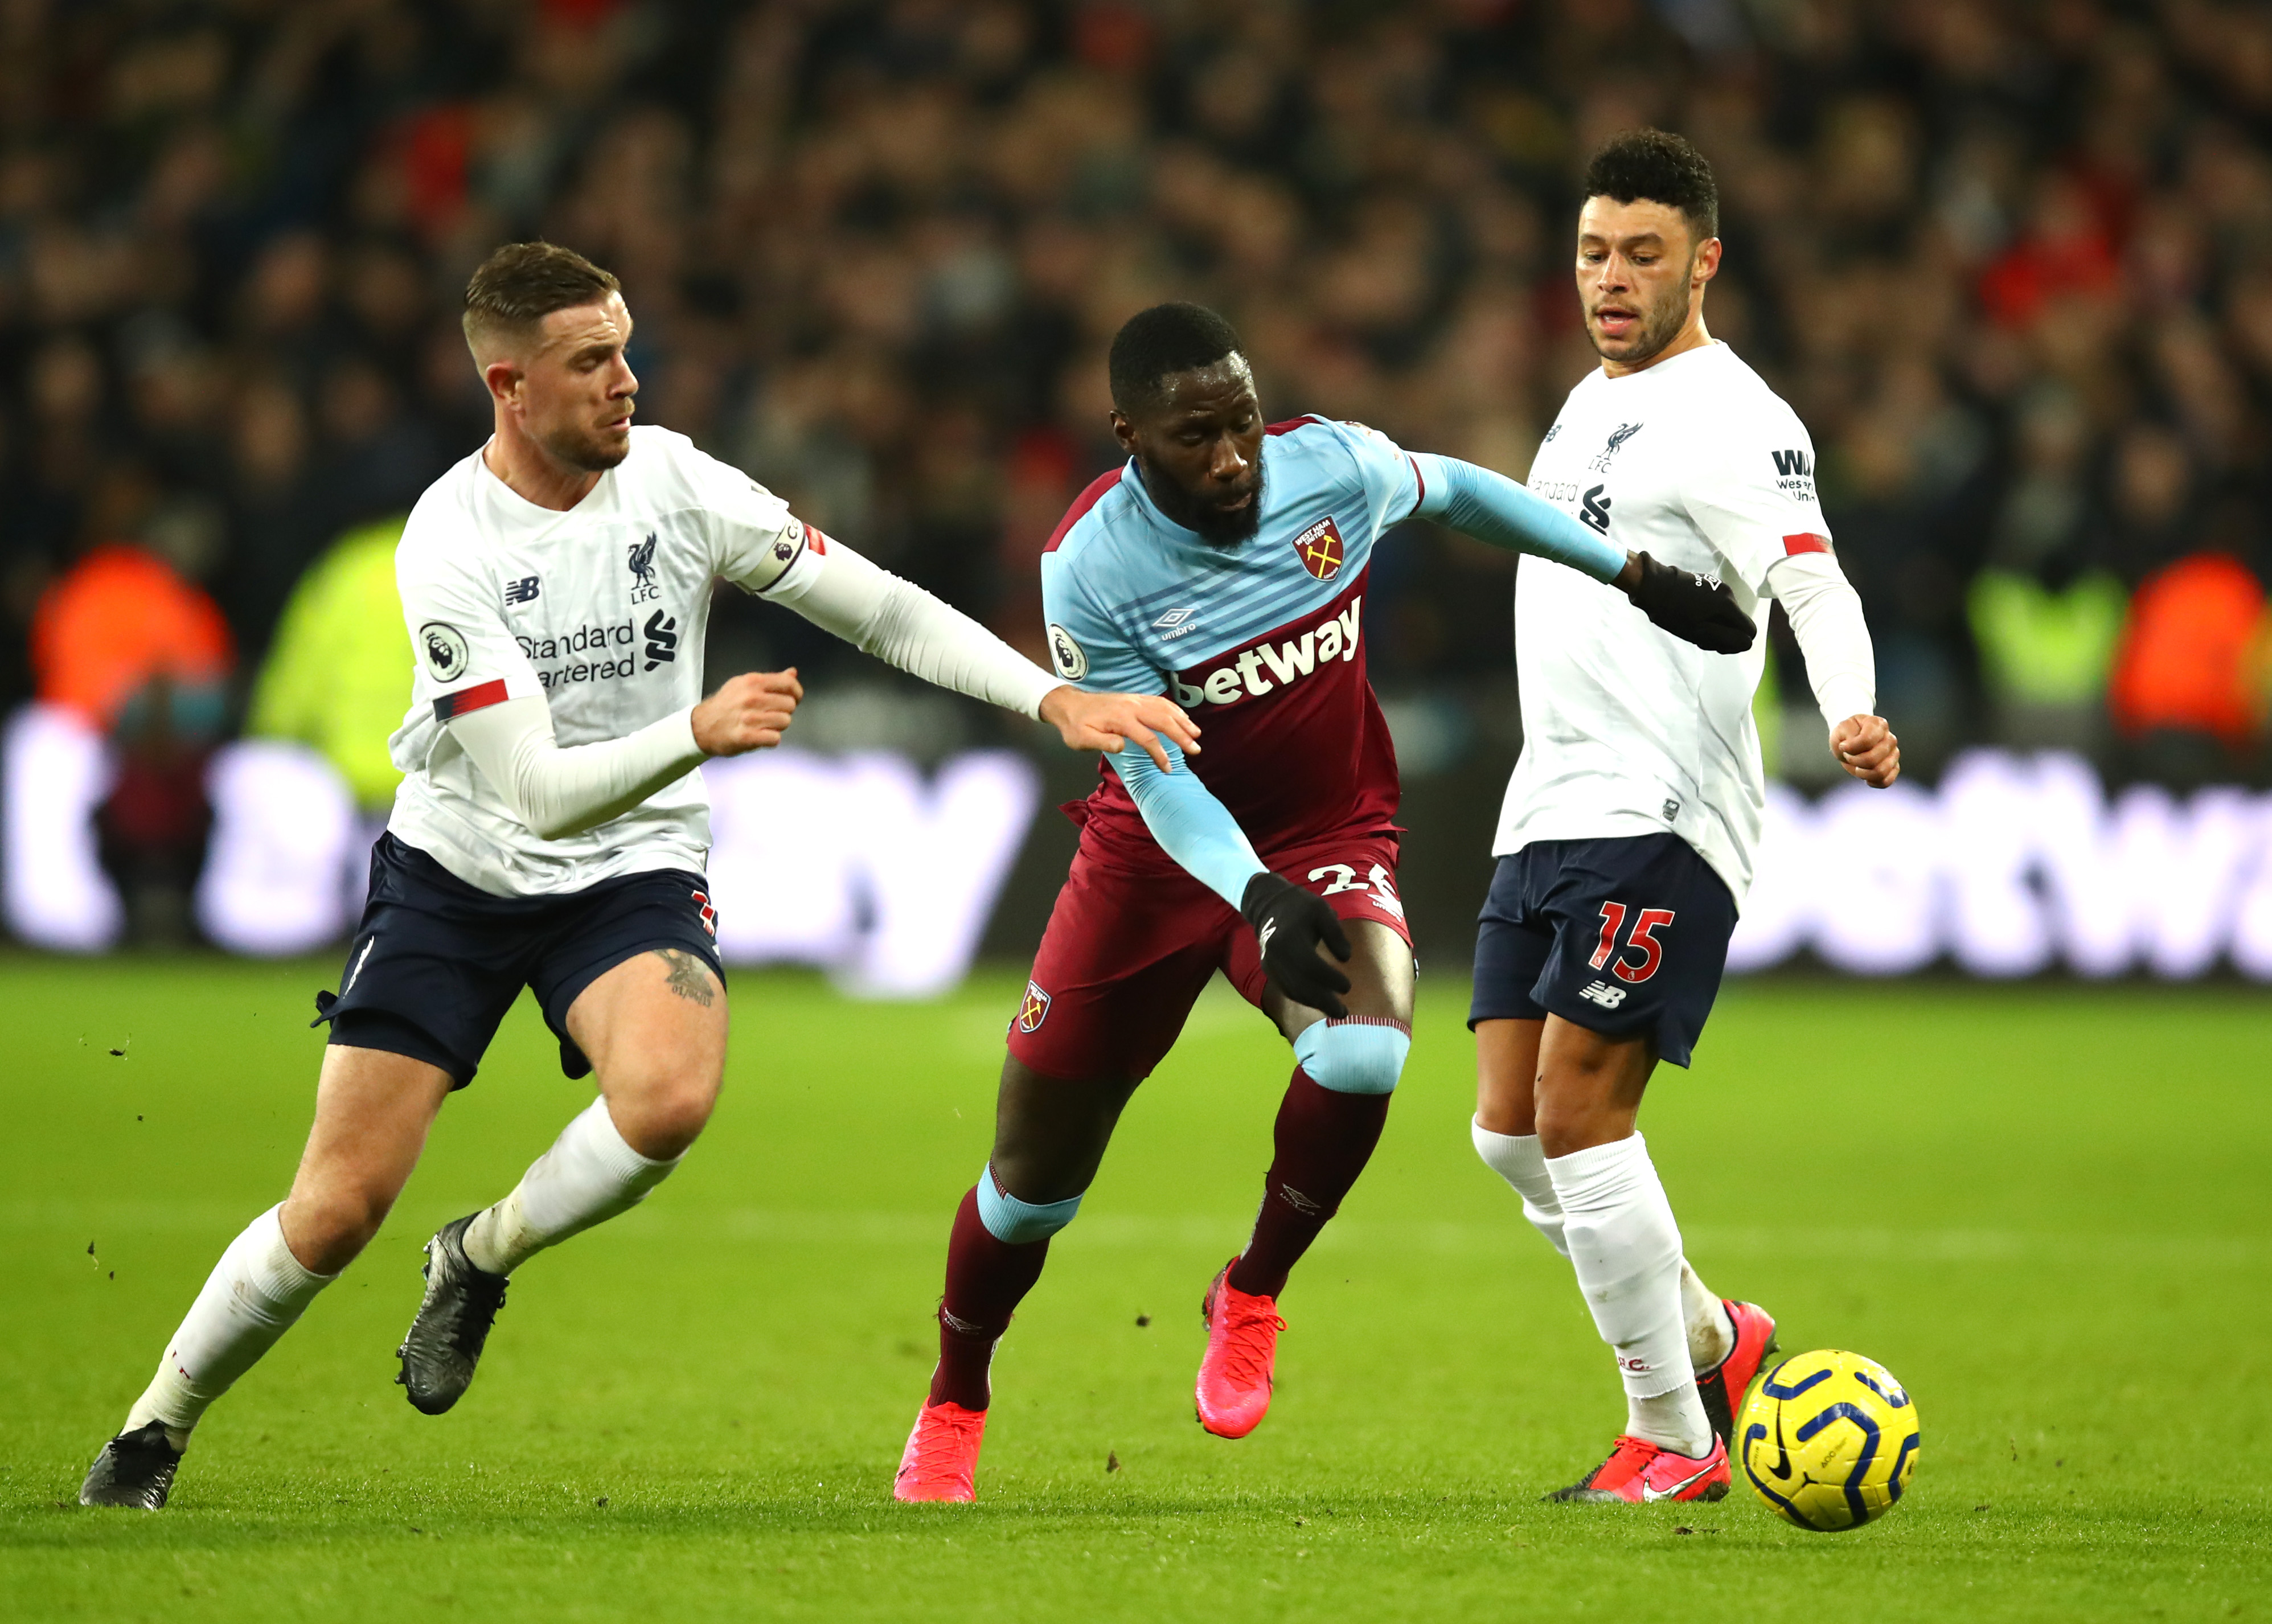 Arthur Masuaku will be unavailable for West Ham against Liverpool (Photo by Julian Finney/Getty Images)